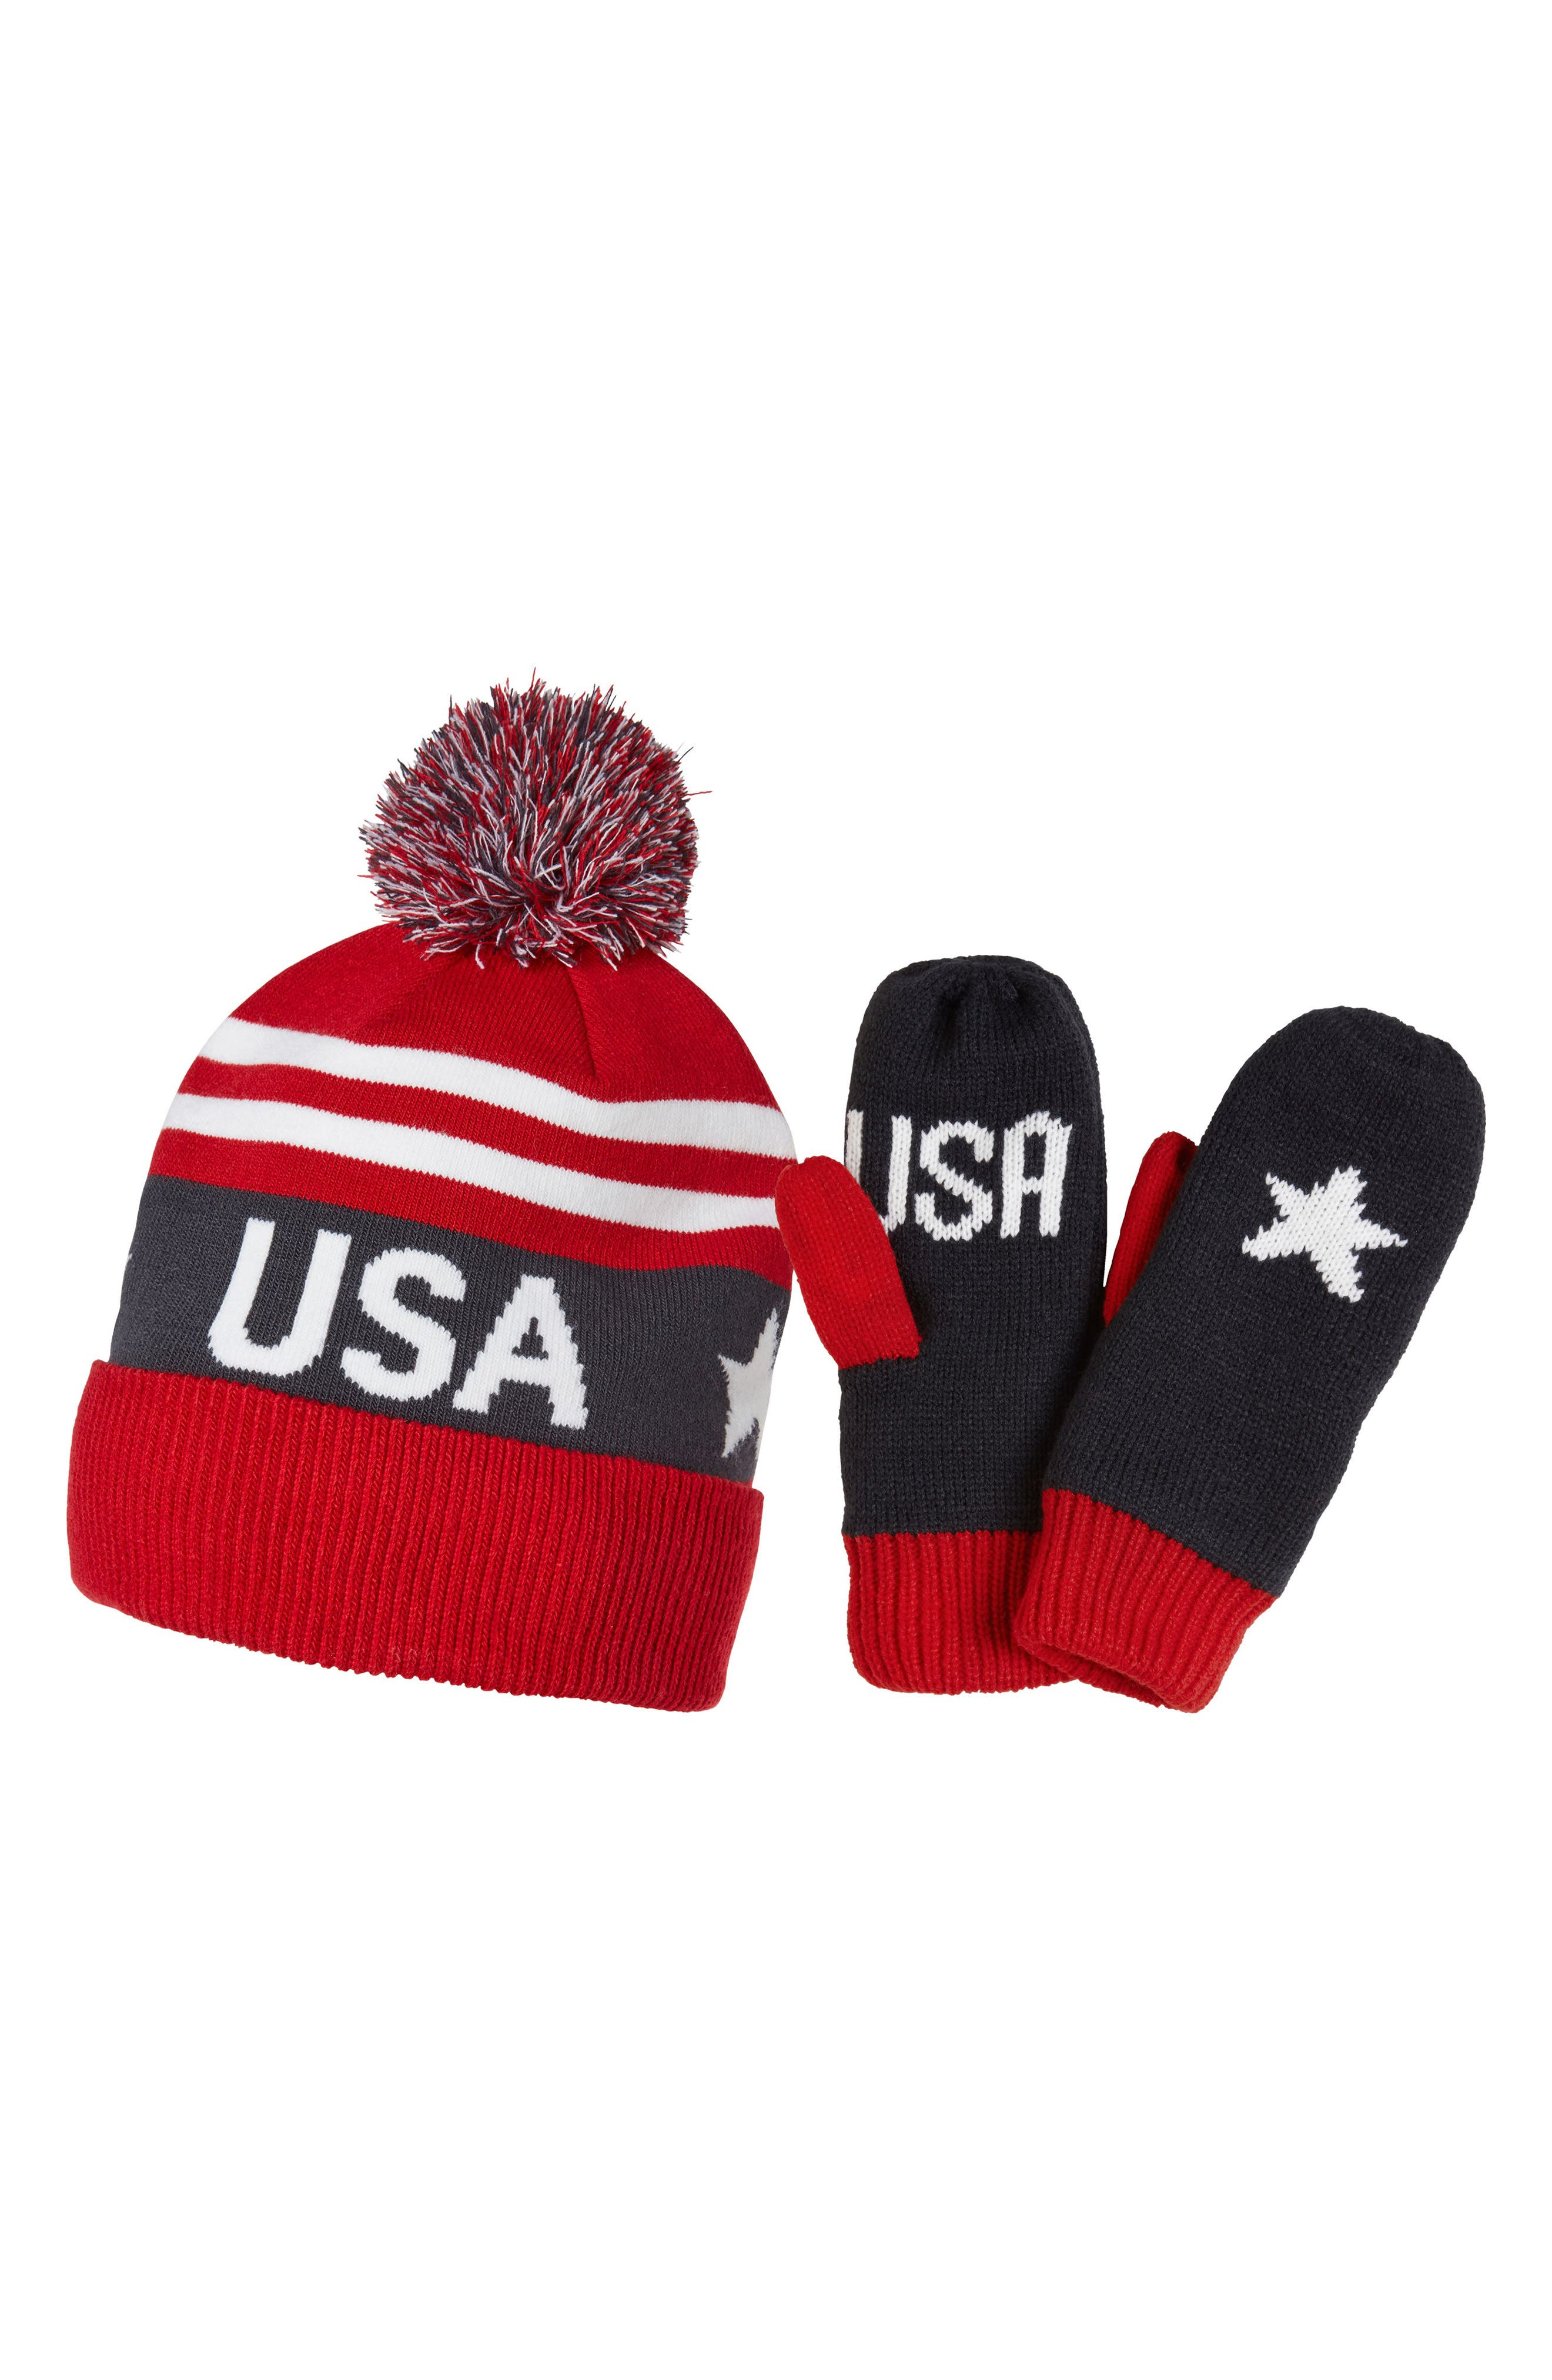 HELLY HANSEN Going For Gold Knit Cap & Mittens Gift Set - Blue in Usa Olympian Blue